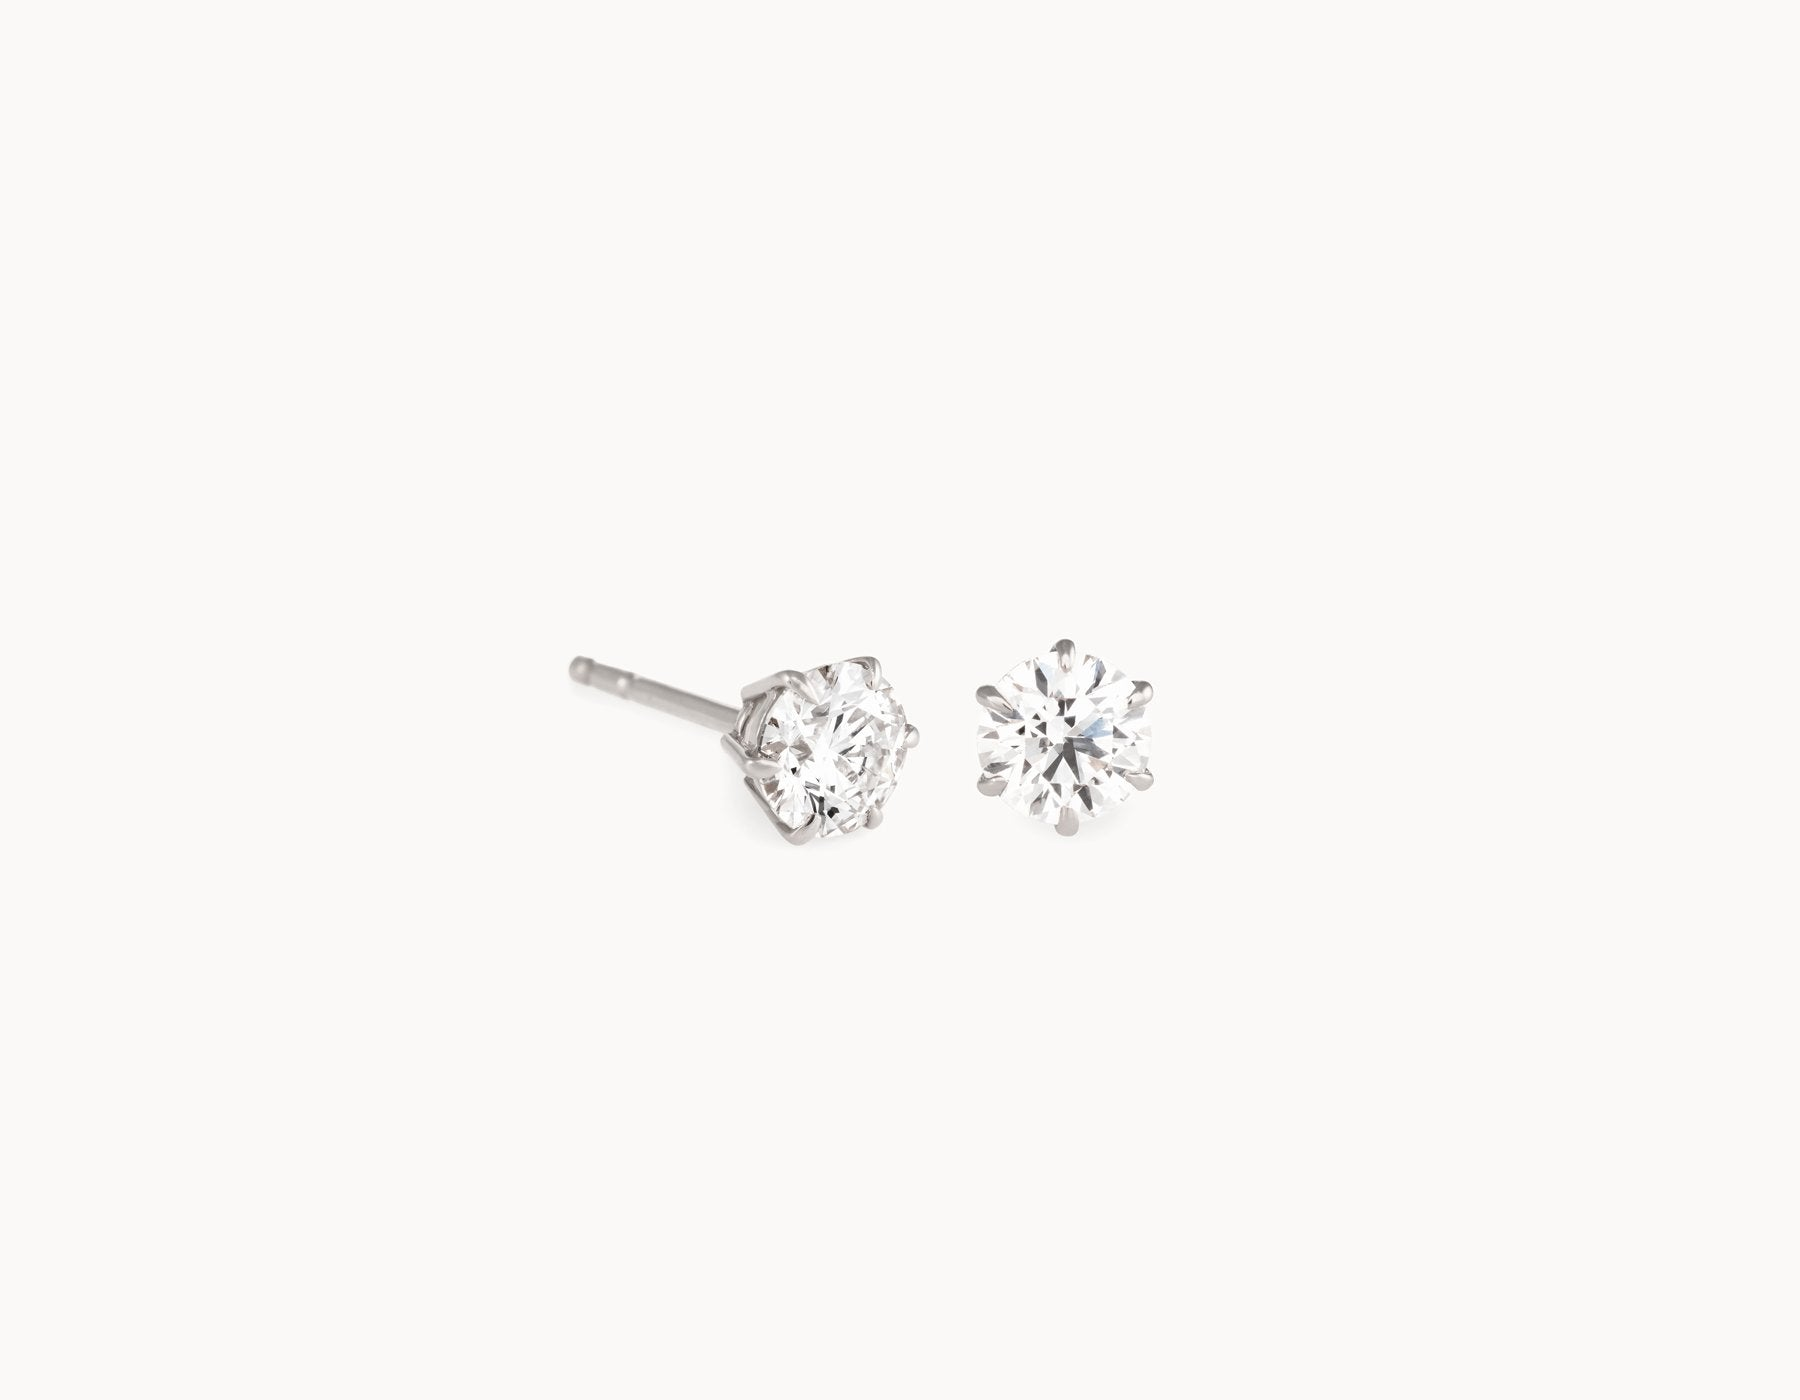 Modern Simple 18k White Gold 1/2ct Round Brilliant Diamond Studs